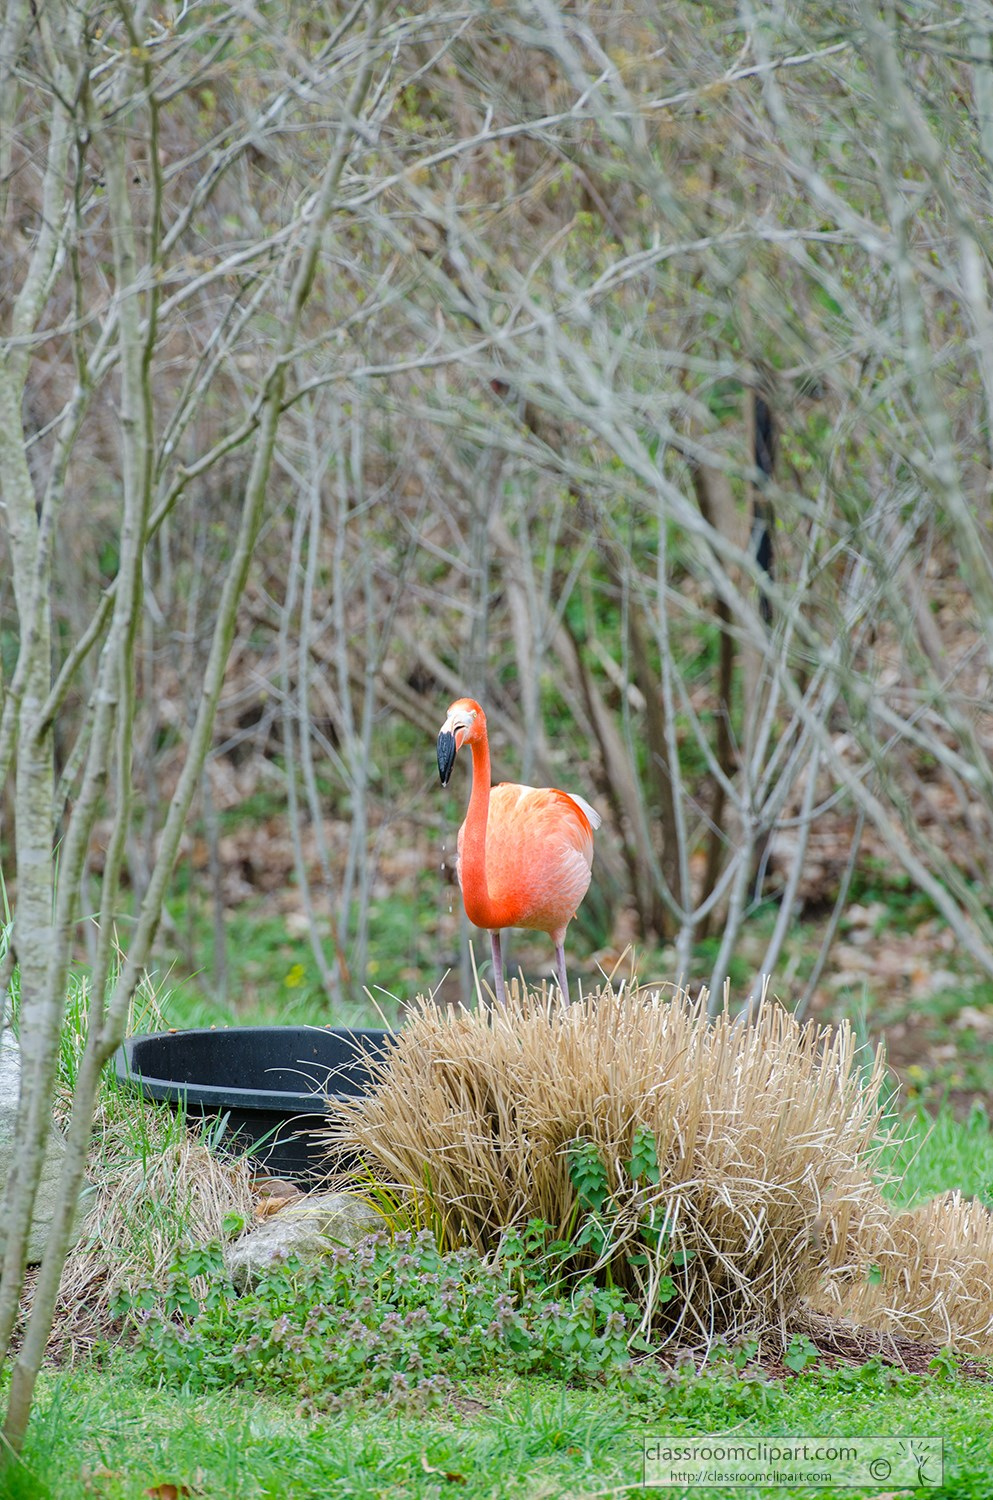 flamingo-standing-near-trees-photo-3832.jpg